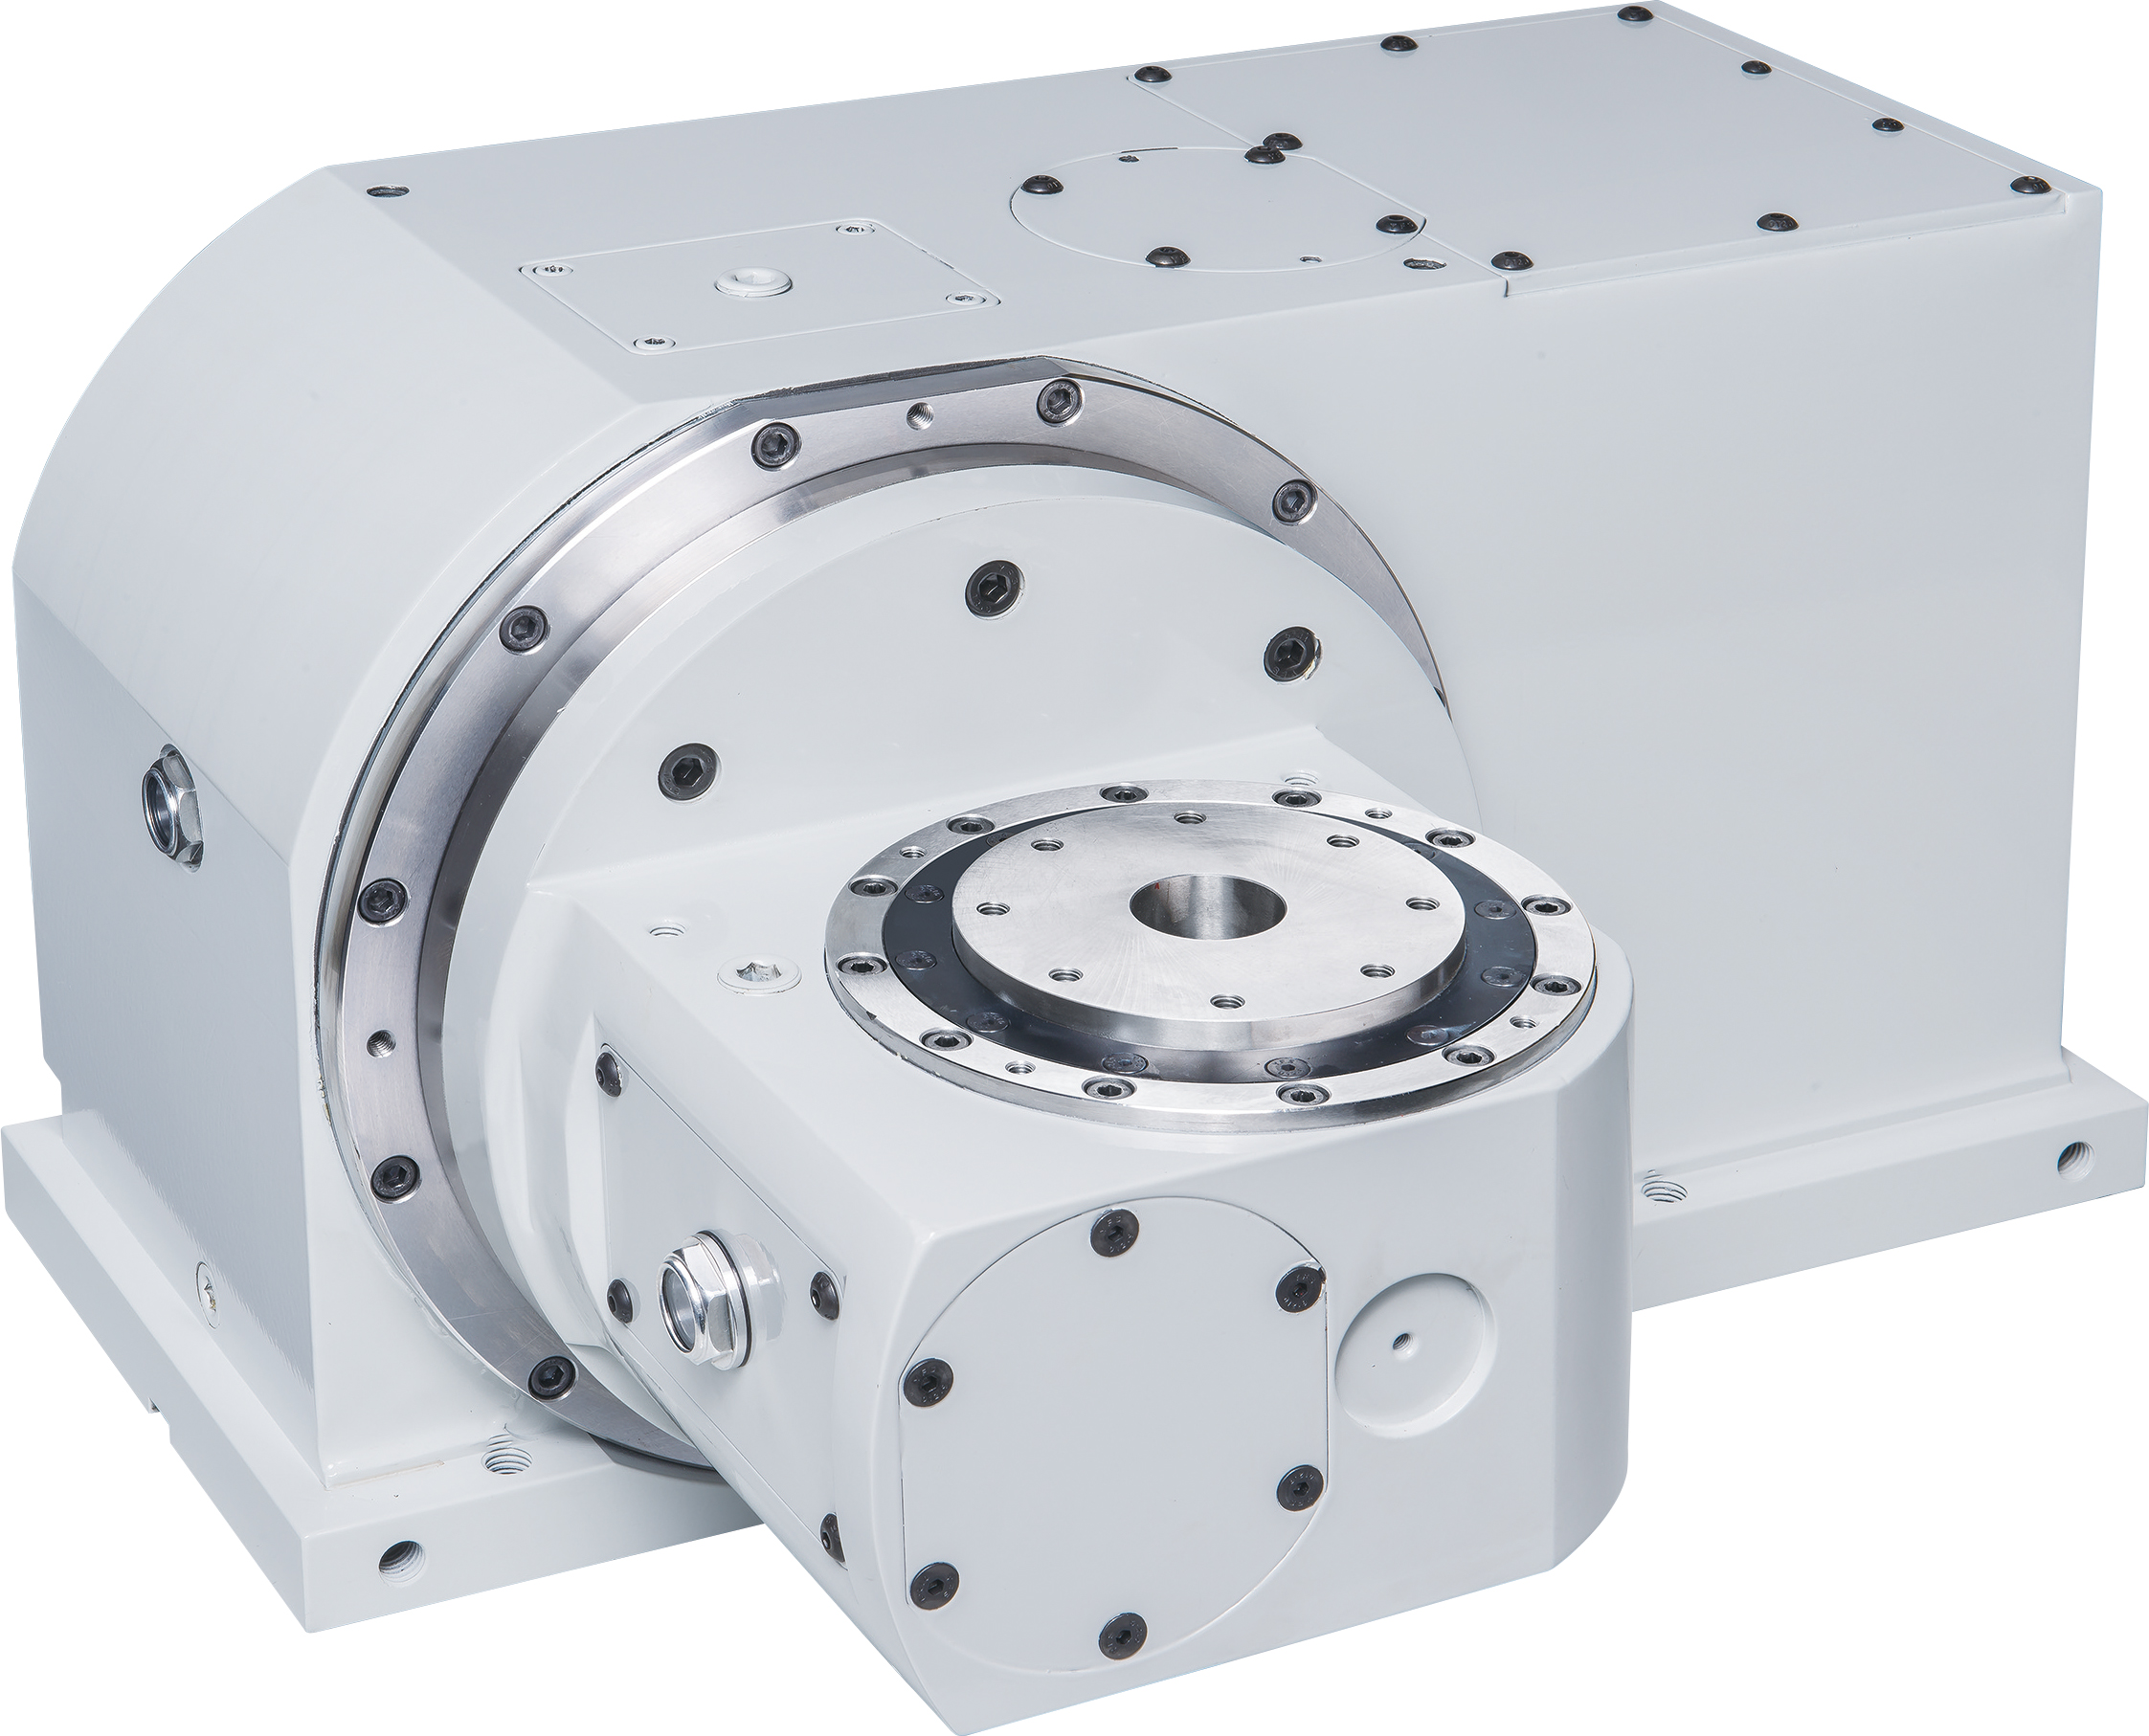 Five-Axi Single-Arm Type Rotary Table